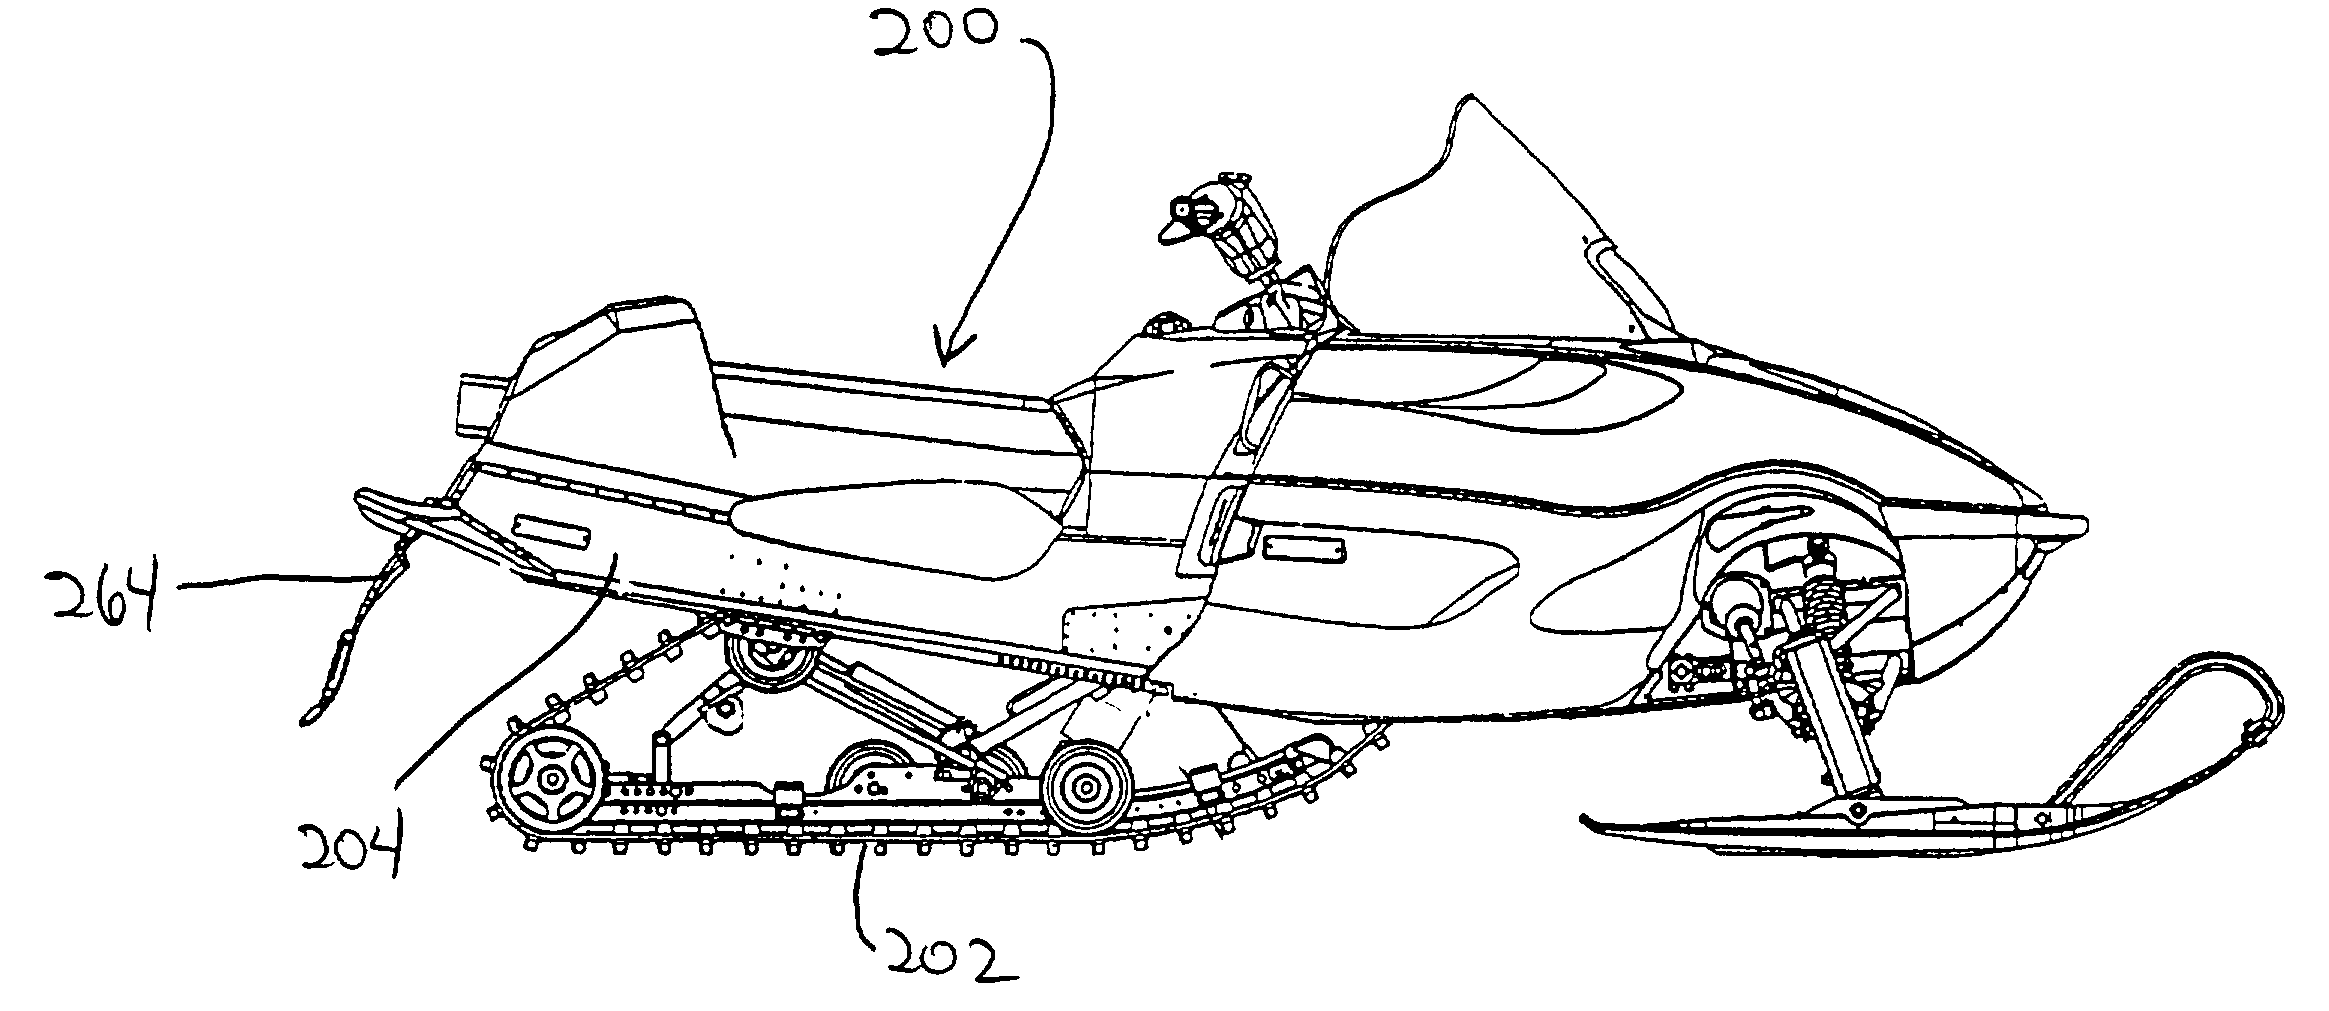 snowmobile drawings Gallery